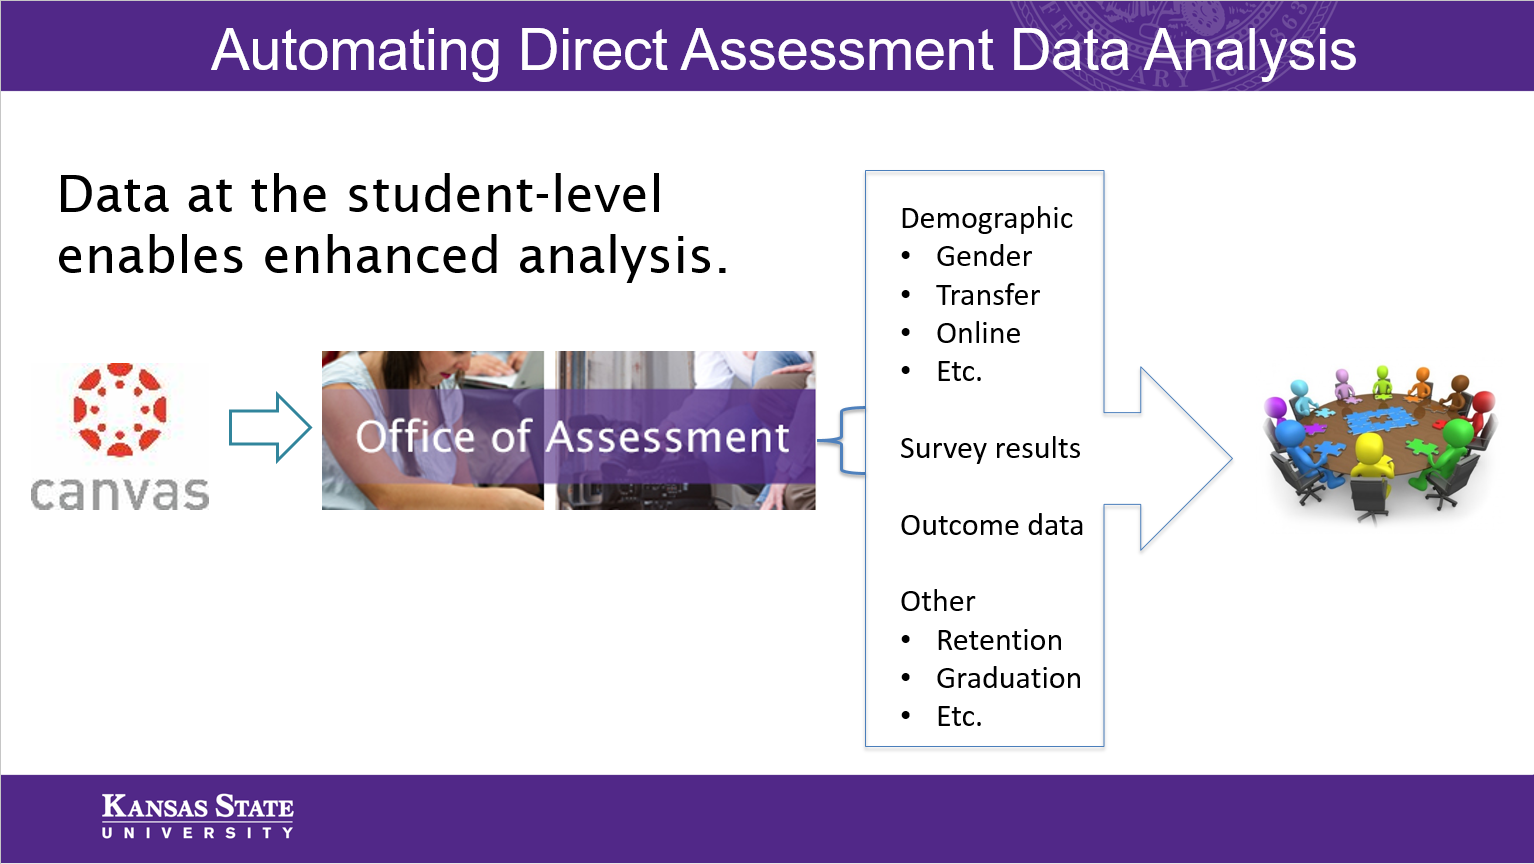 Automating Direct Assessment Analysis